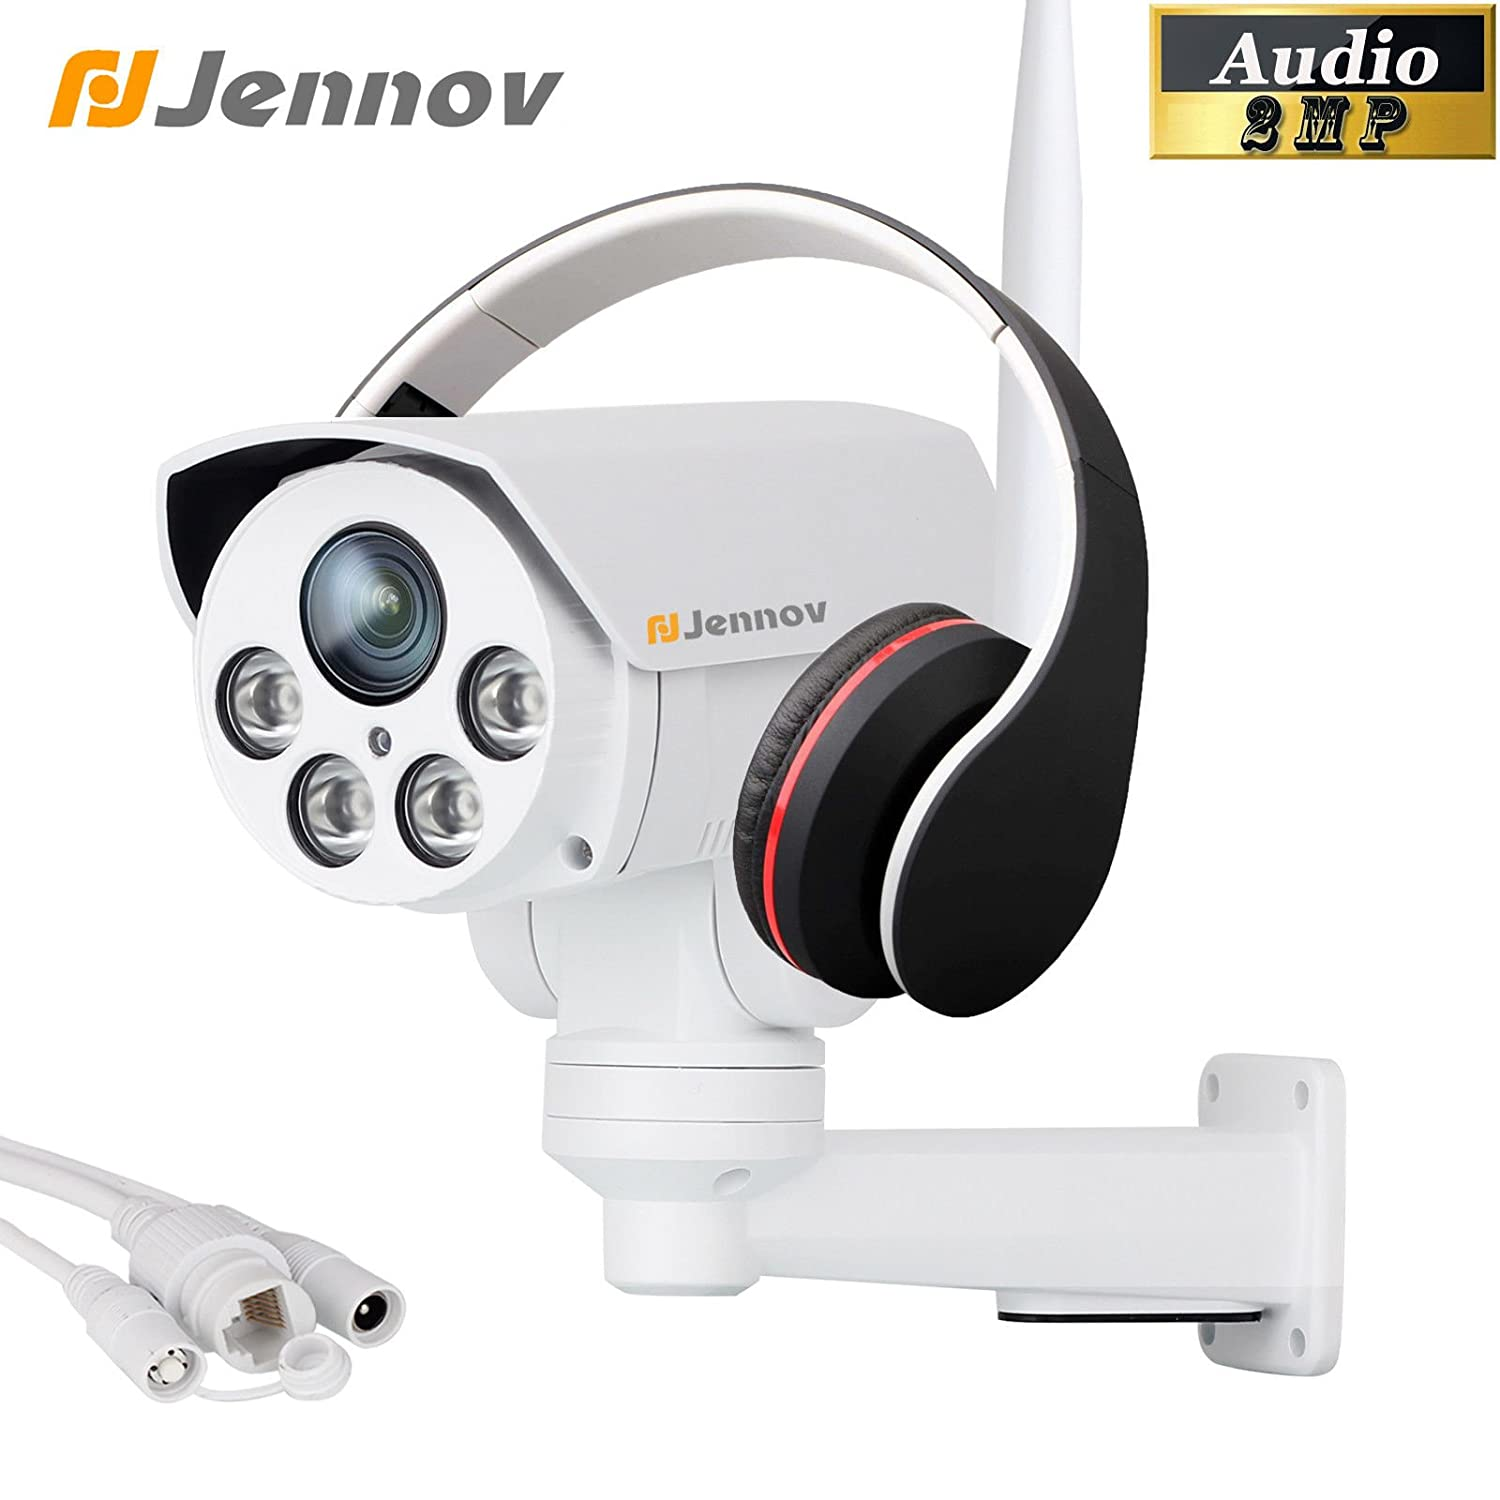 Jennov Wireless Security Camera, 1080P Wireless WiFi PTZ Camera Home Video IP Network Surveillance Pre-installed 16G MicroSD Card With 4X Zoom Lens Audio Outdoor Night Vision